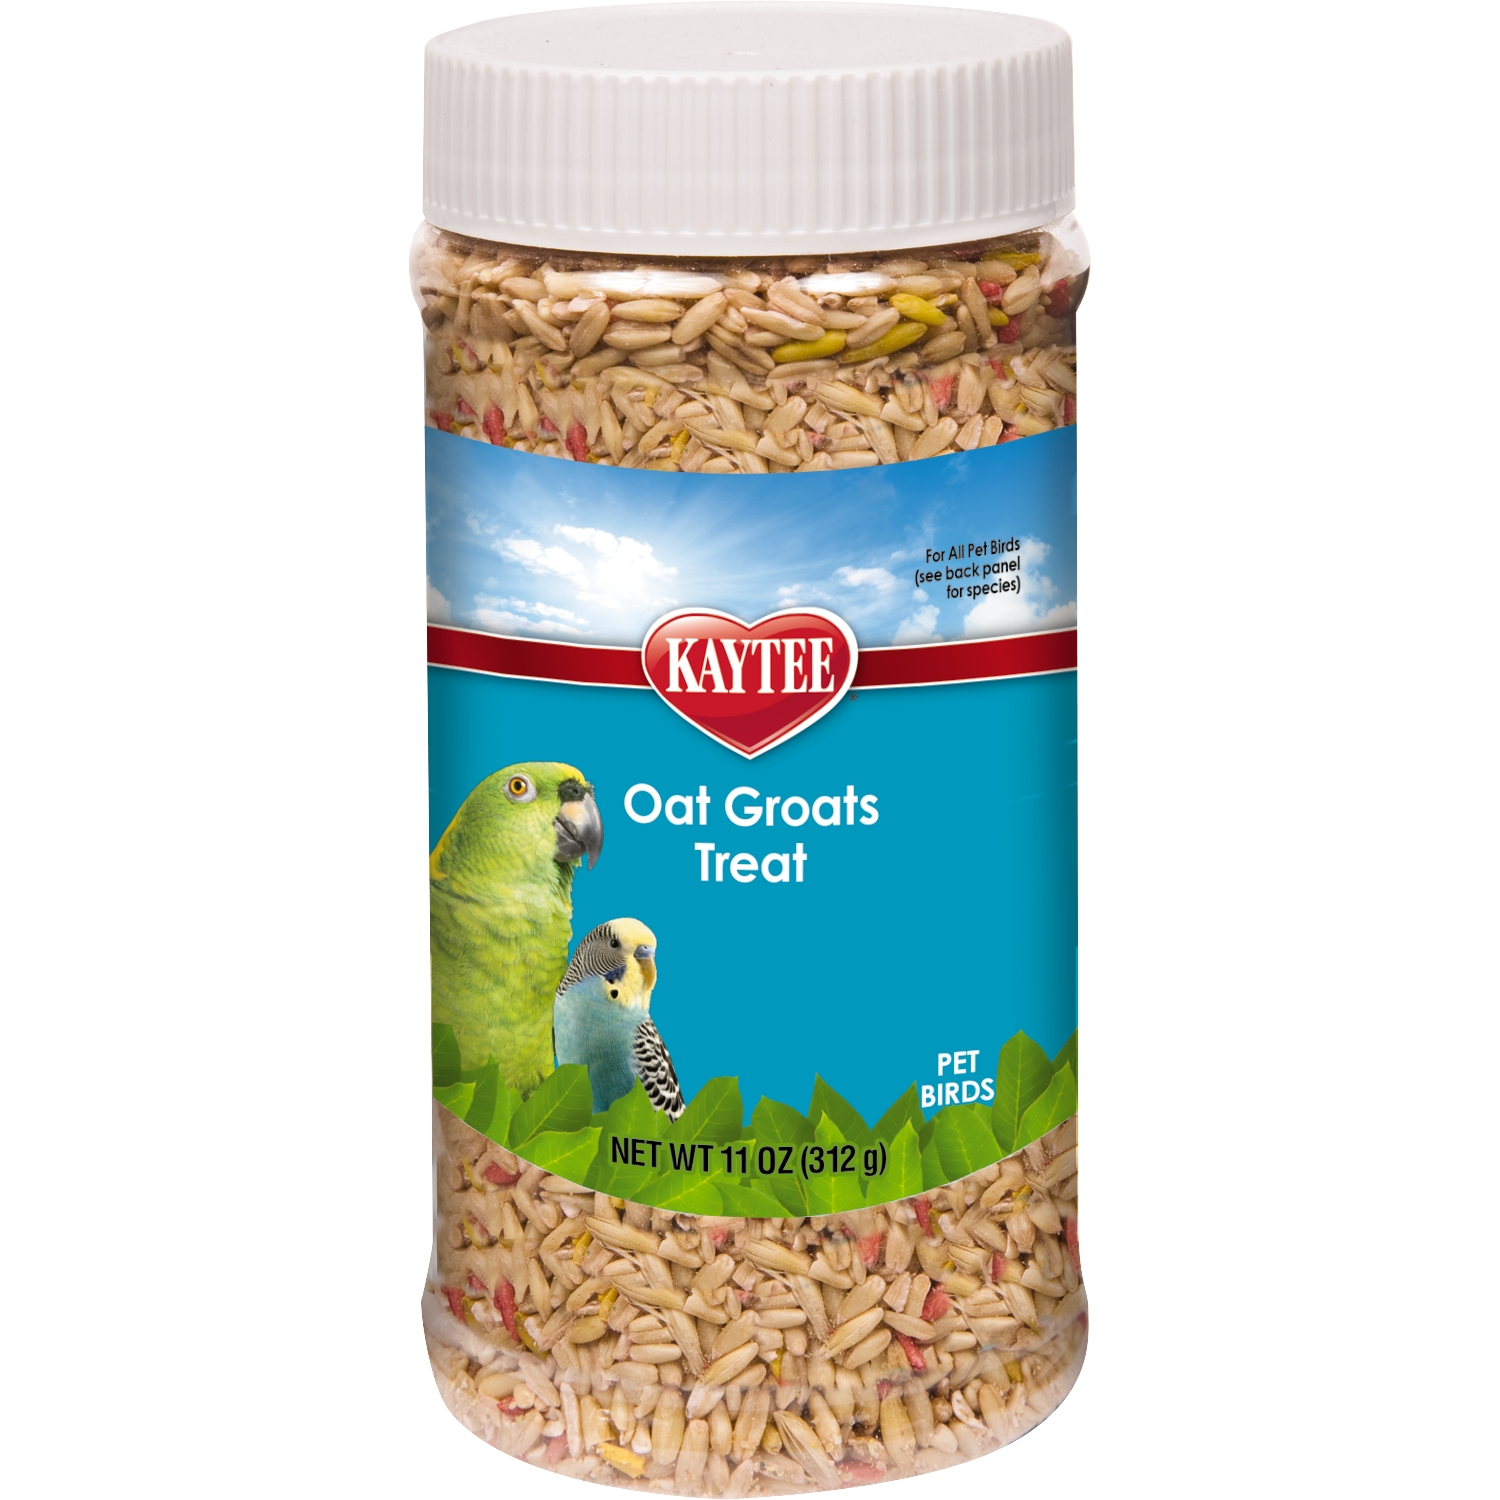 Kaytee Oat Groats Treat for All Pet Birds